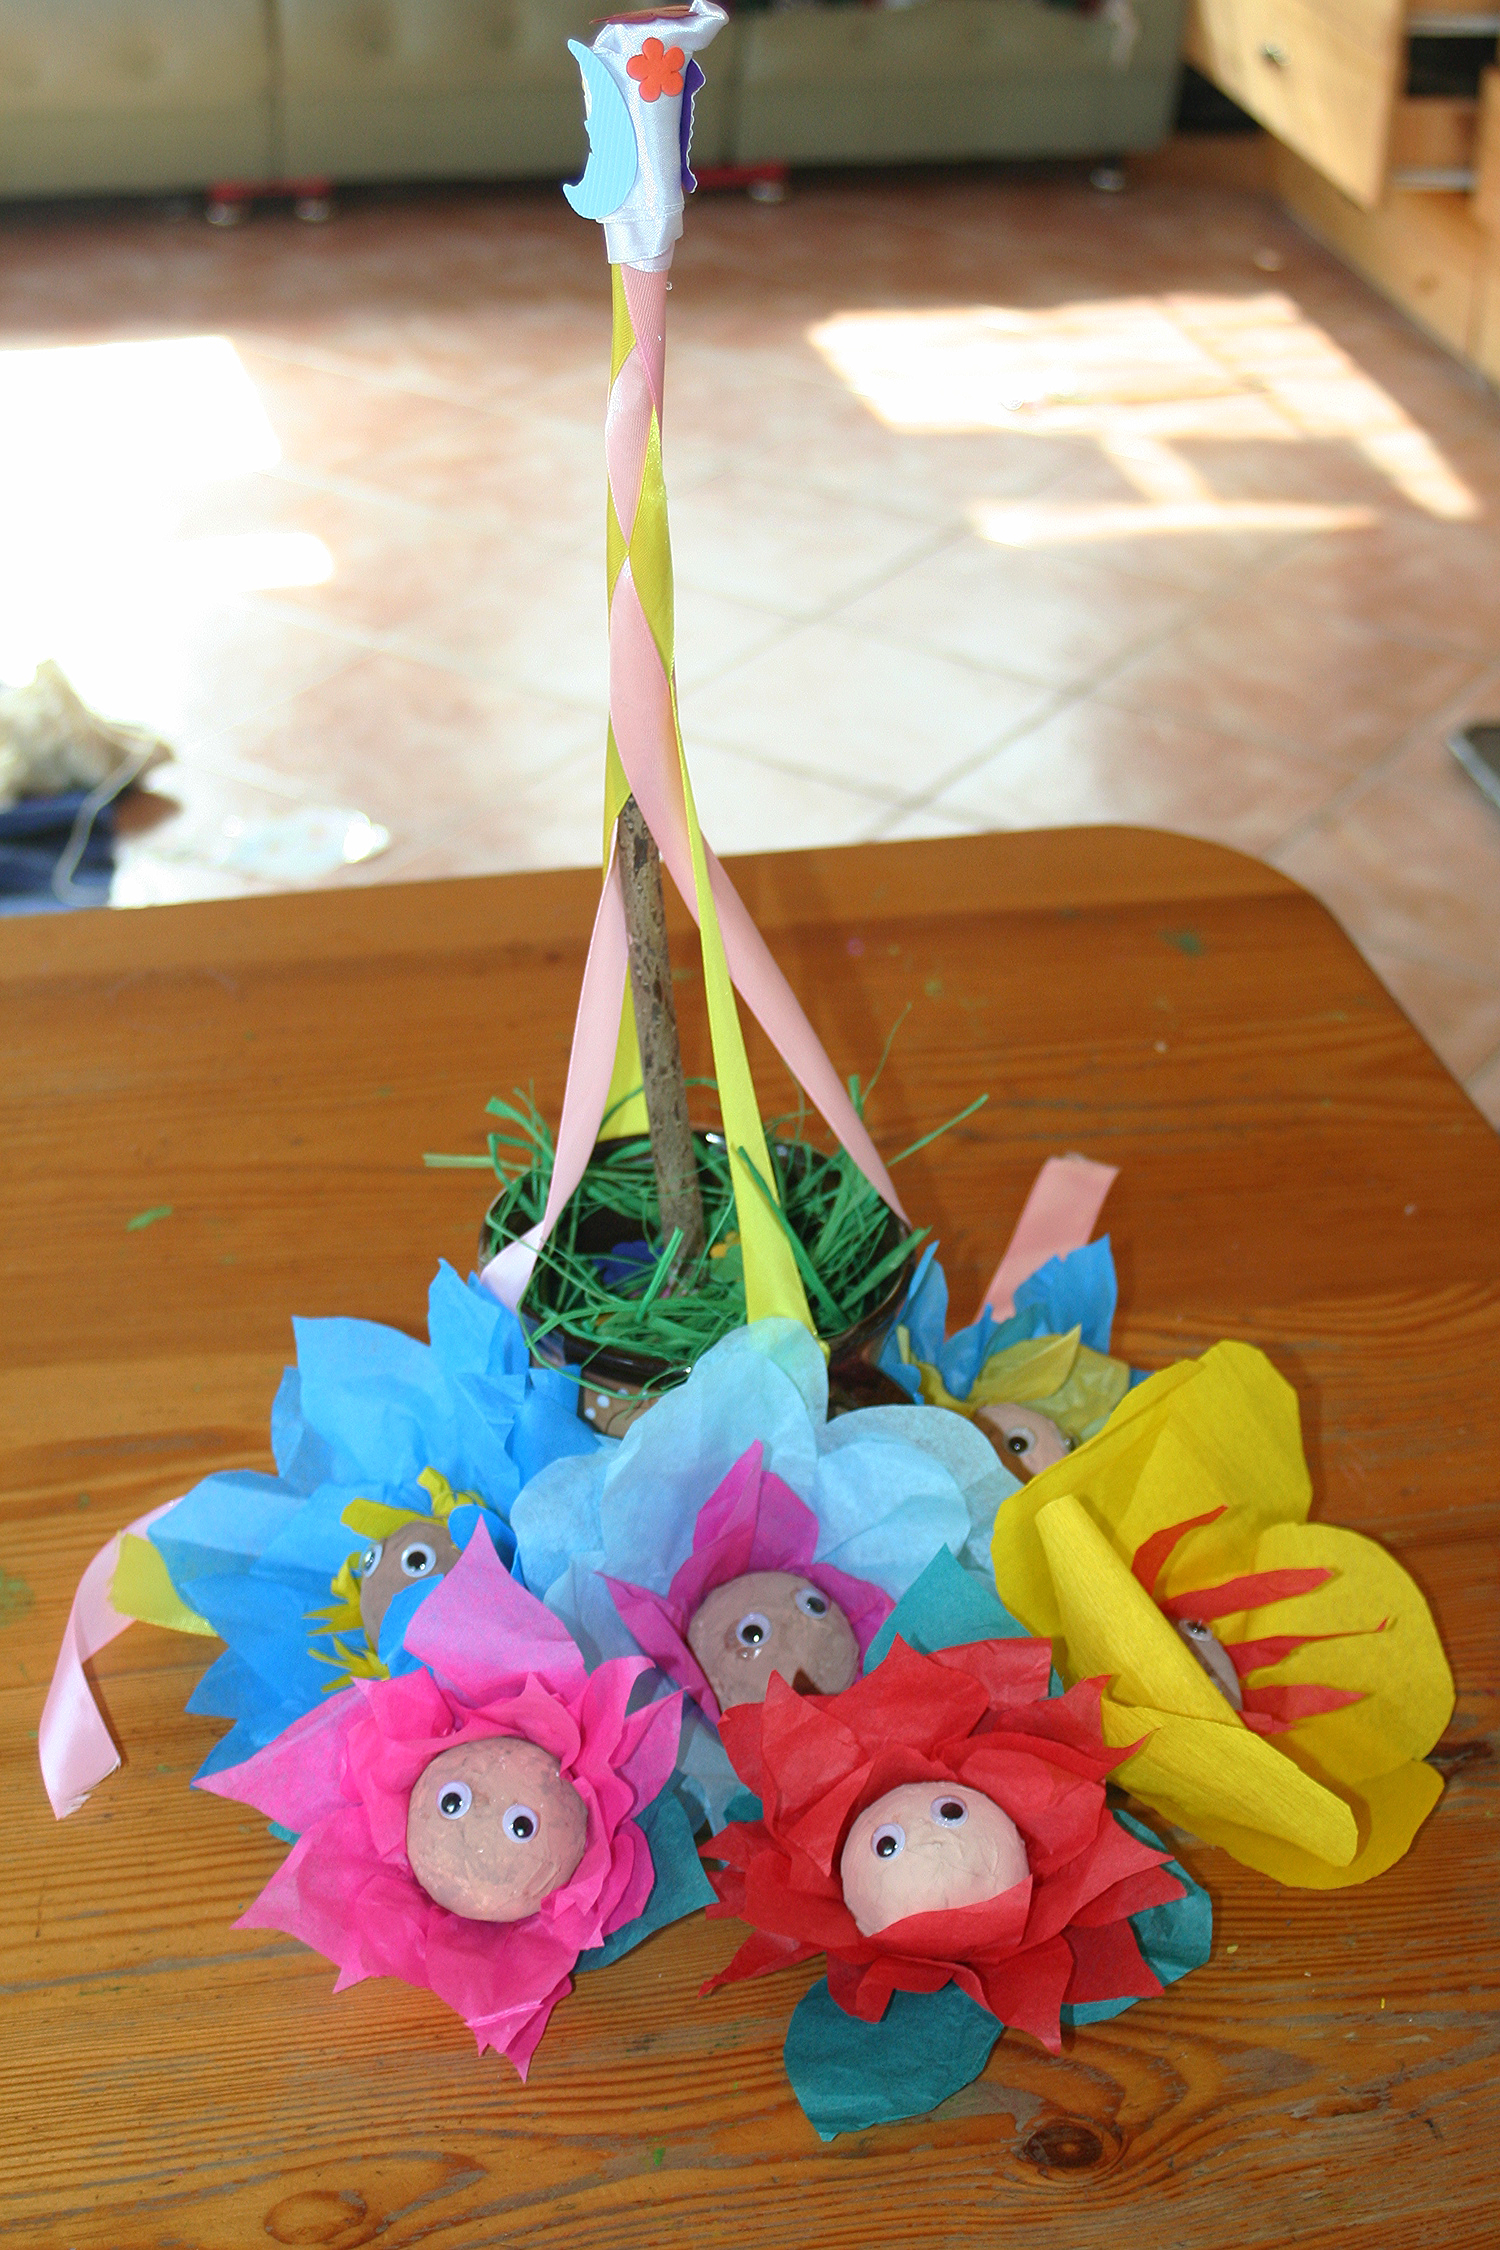 Flower babies and mini maypole